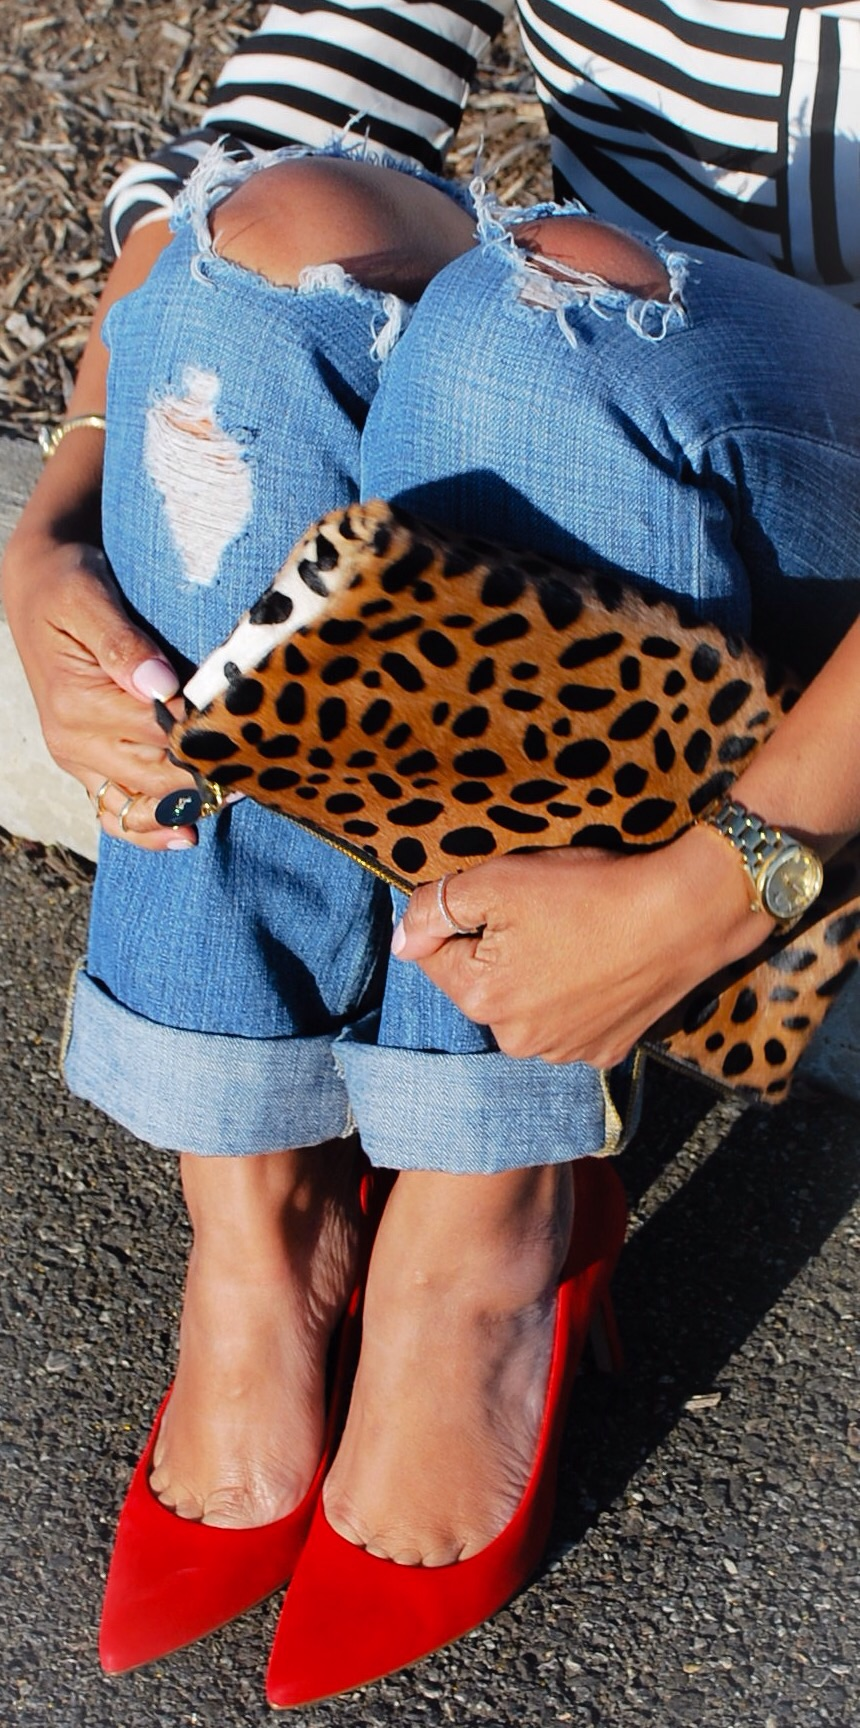 This Season's Gold // Leopard print clutch and red pumps